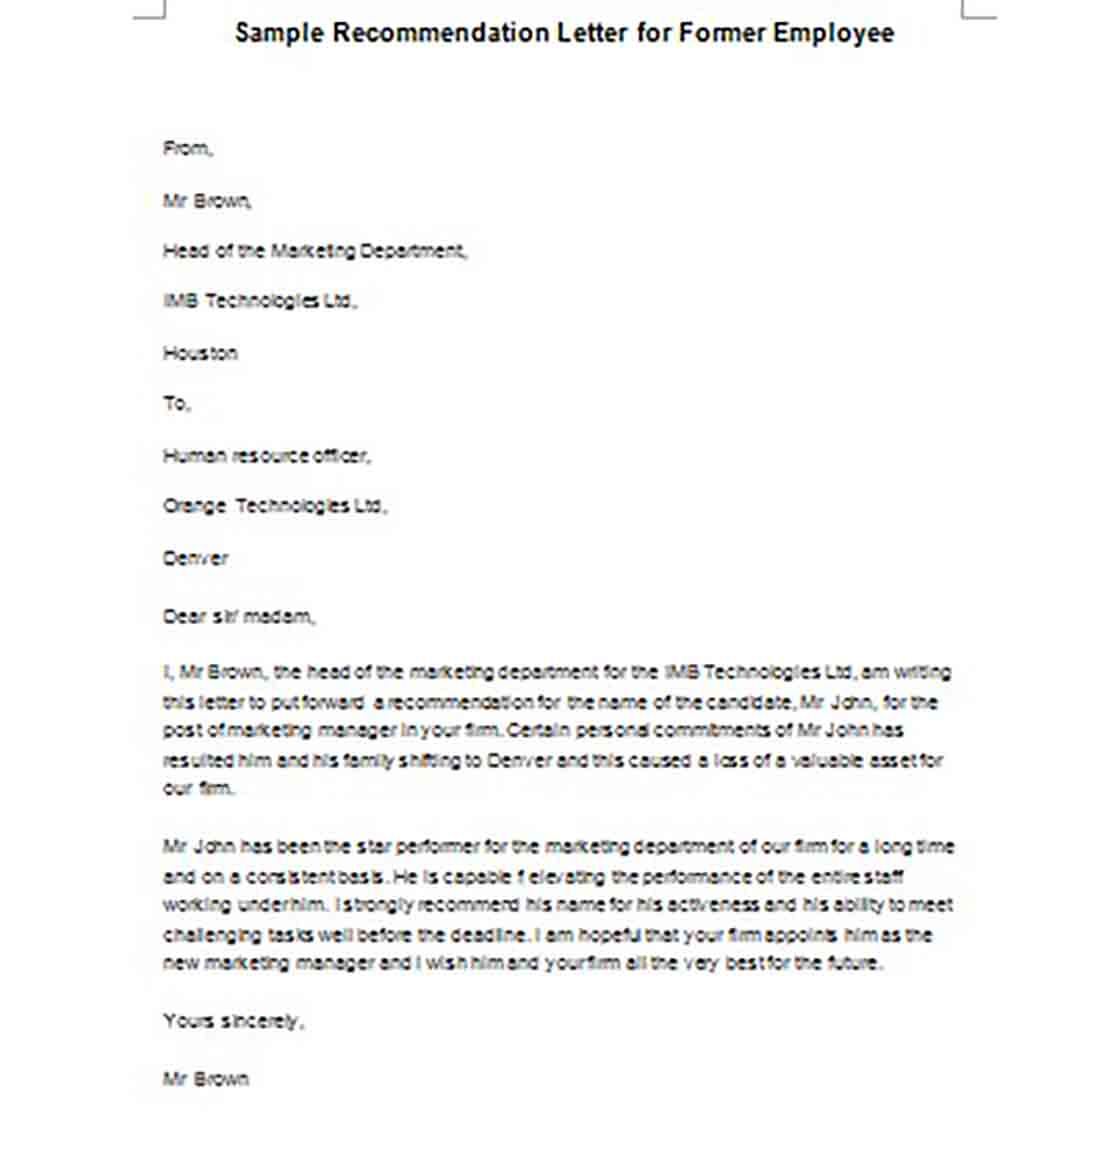 Recommendation Letter for Former Employee templates